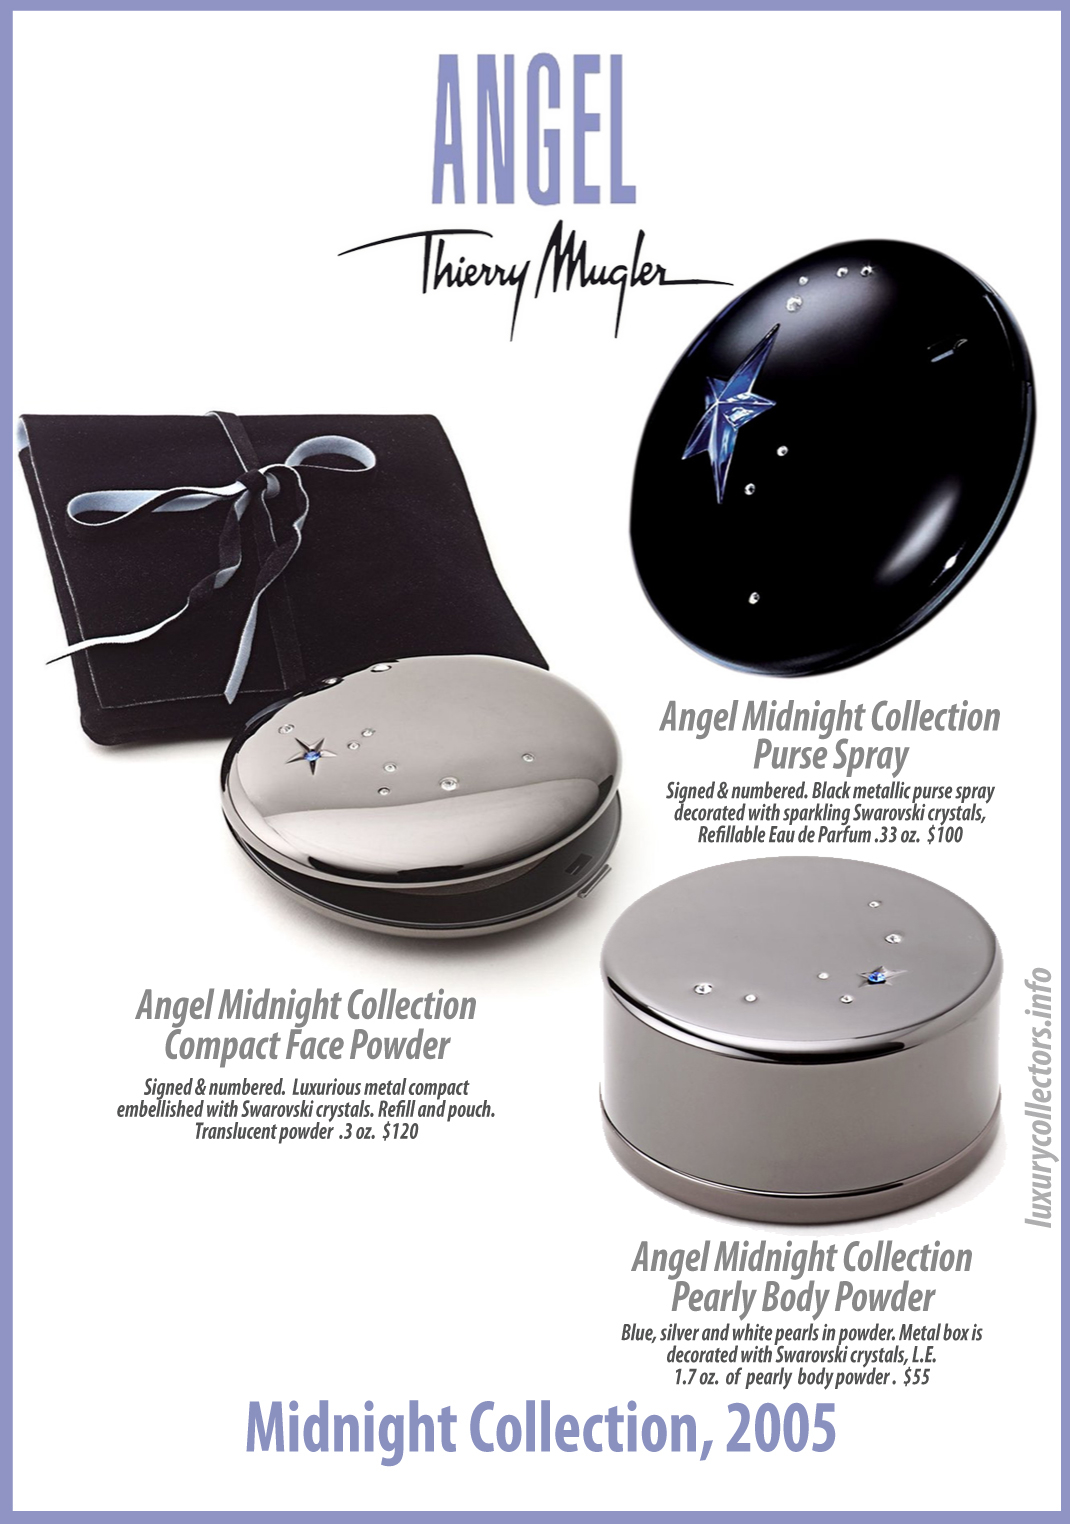 Thierry Mugler Angel Perfume Collector's Limited Edition Bottle 2005 Midnight Collection Trio